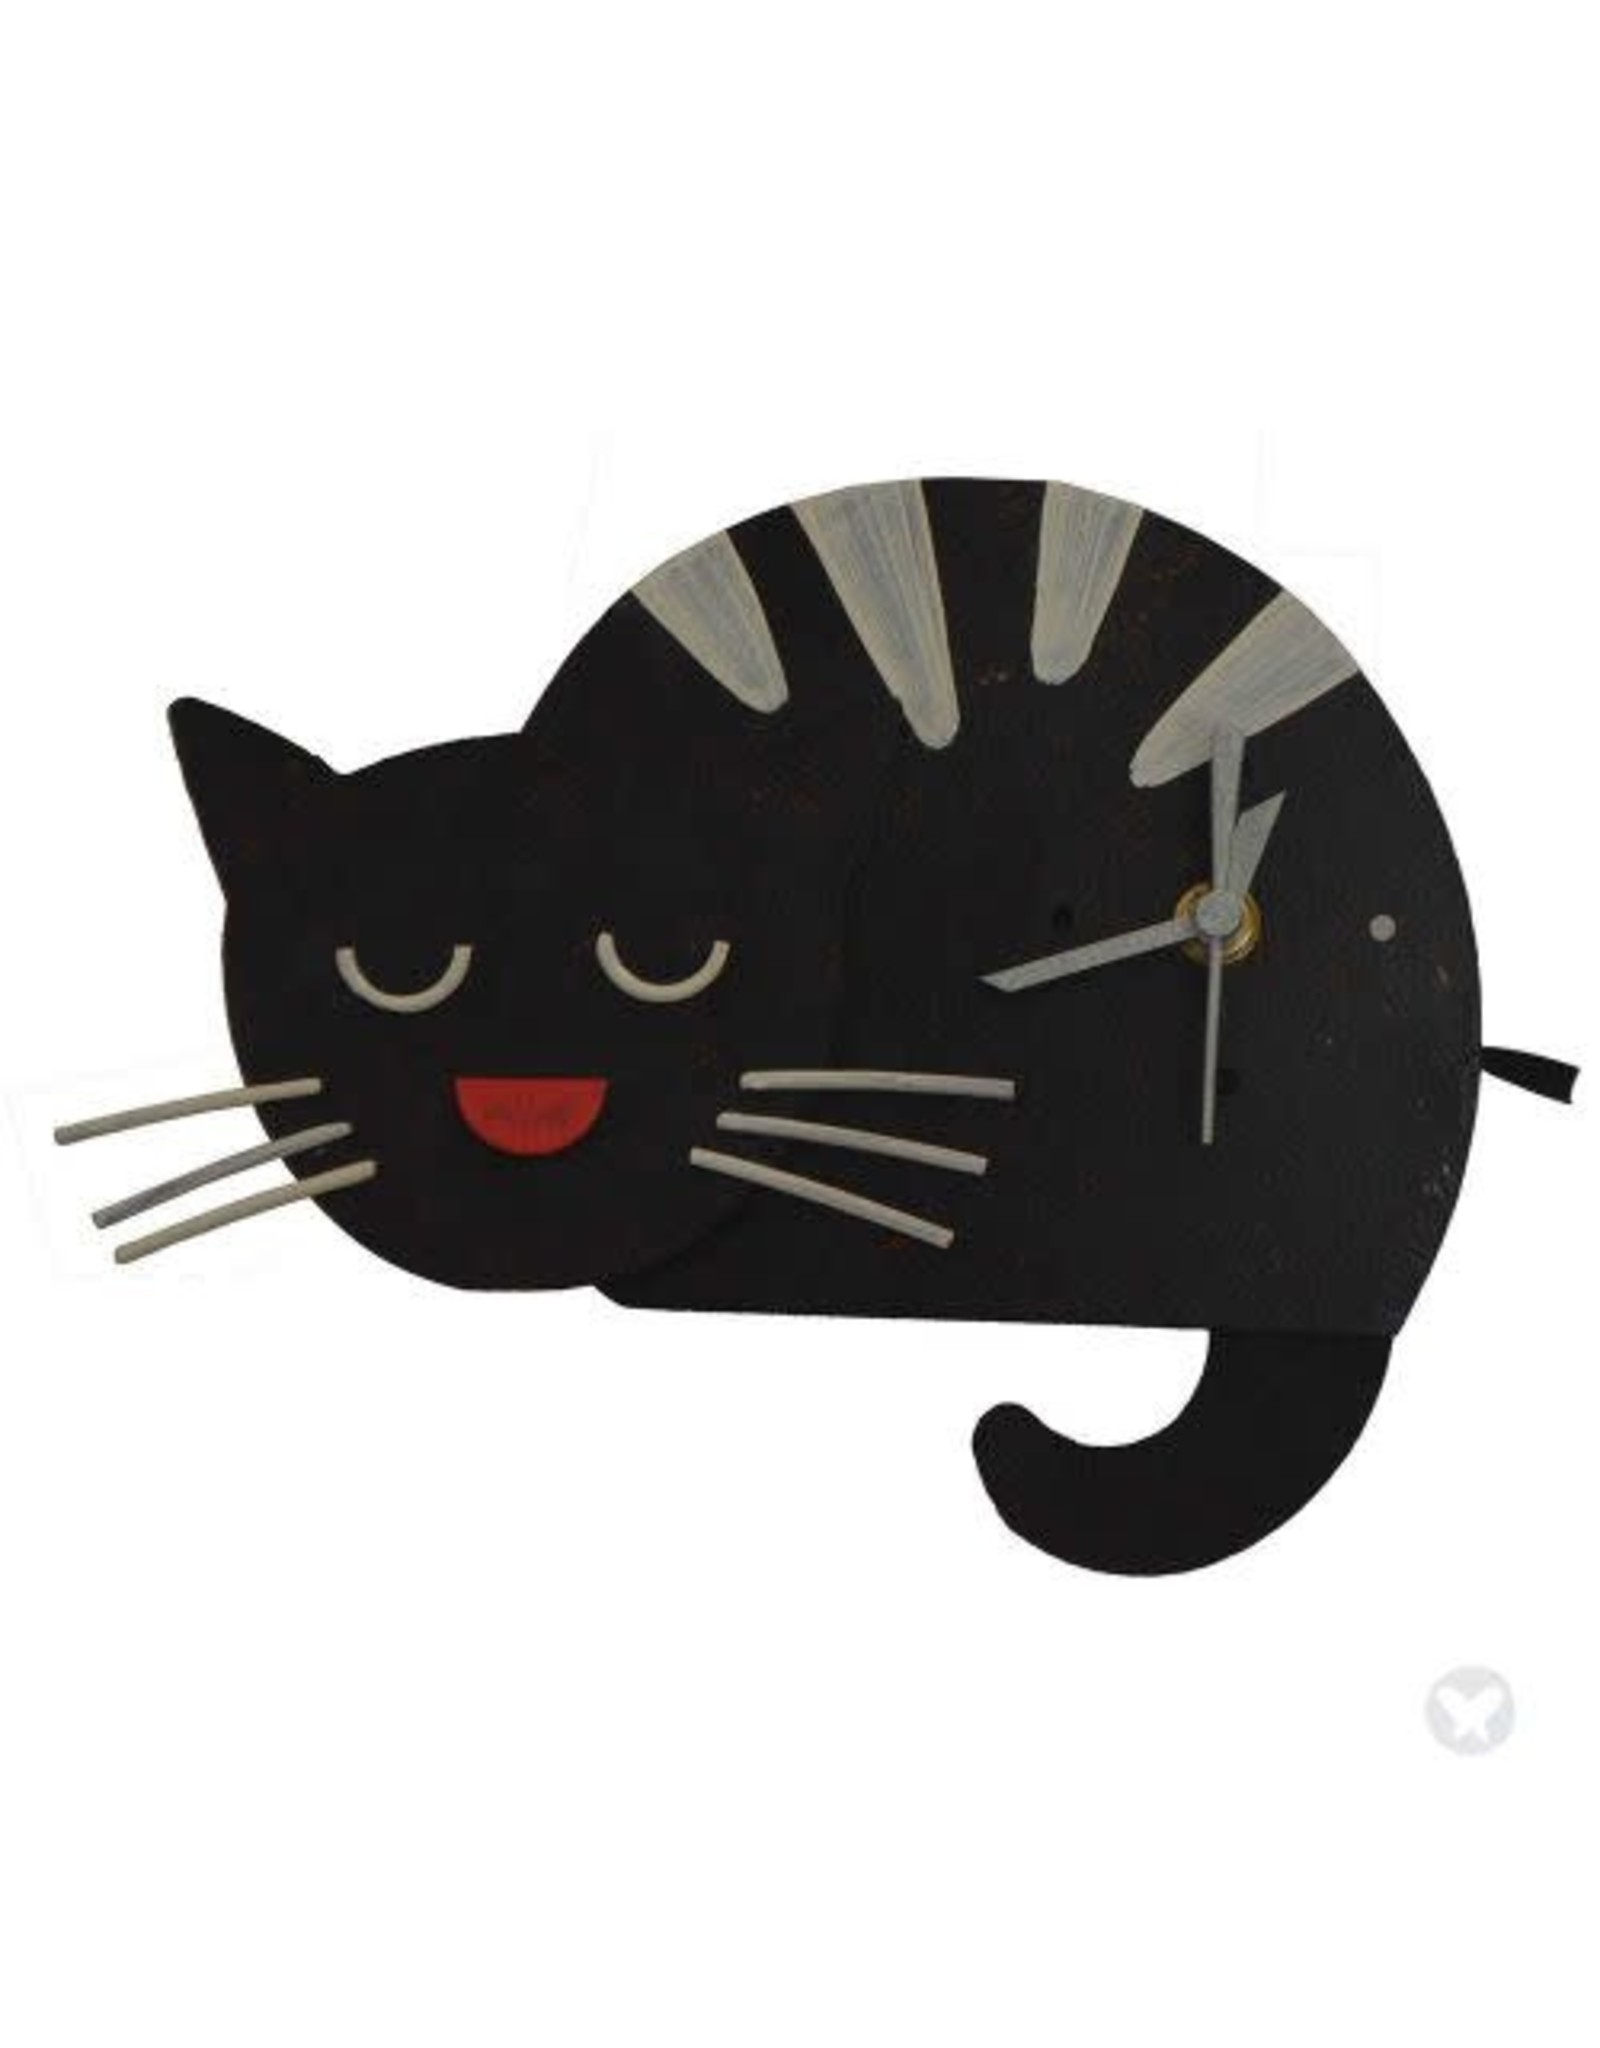 Sleepy Kitten Clock - Black